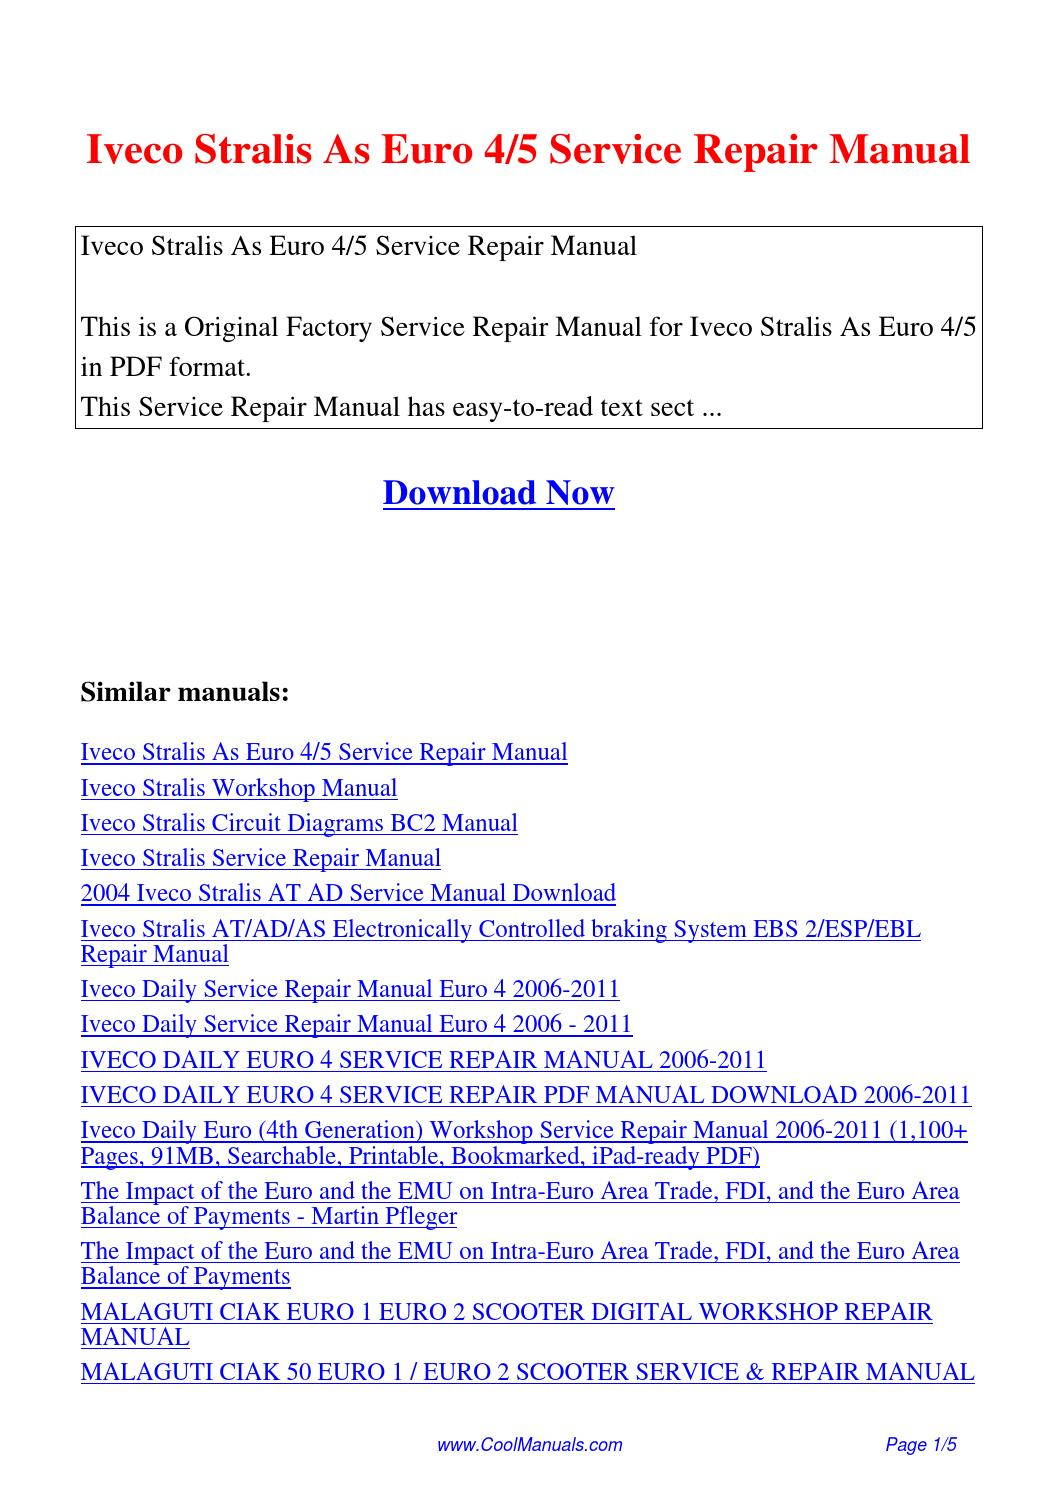 Iveco Stralis As Euro 4 5 Service Repair Manual.pdf by Linda Pong - issuu